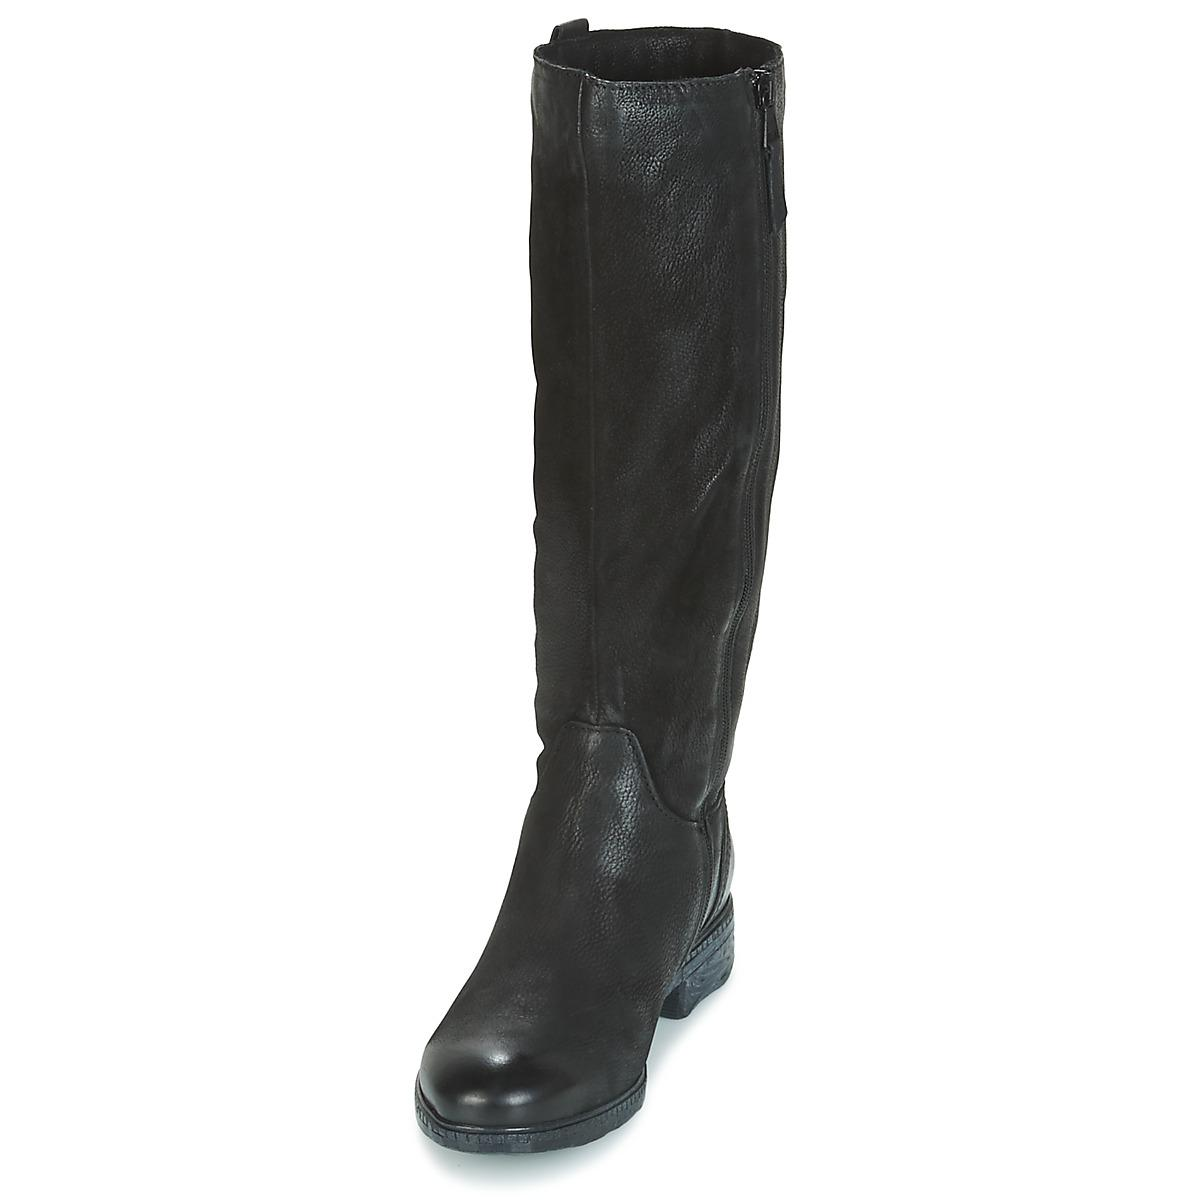 Dream in Green CHAHINE women's High Boots in Cheap Fast Delivery Fast Shipping Cheap Sale Footlocker Pictures Big Sale Sale Online Fake Online cILwRDc4